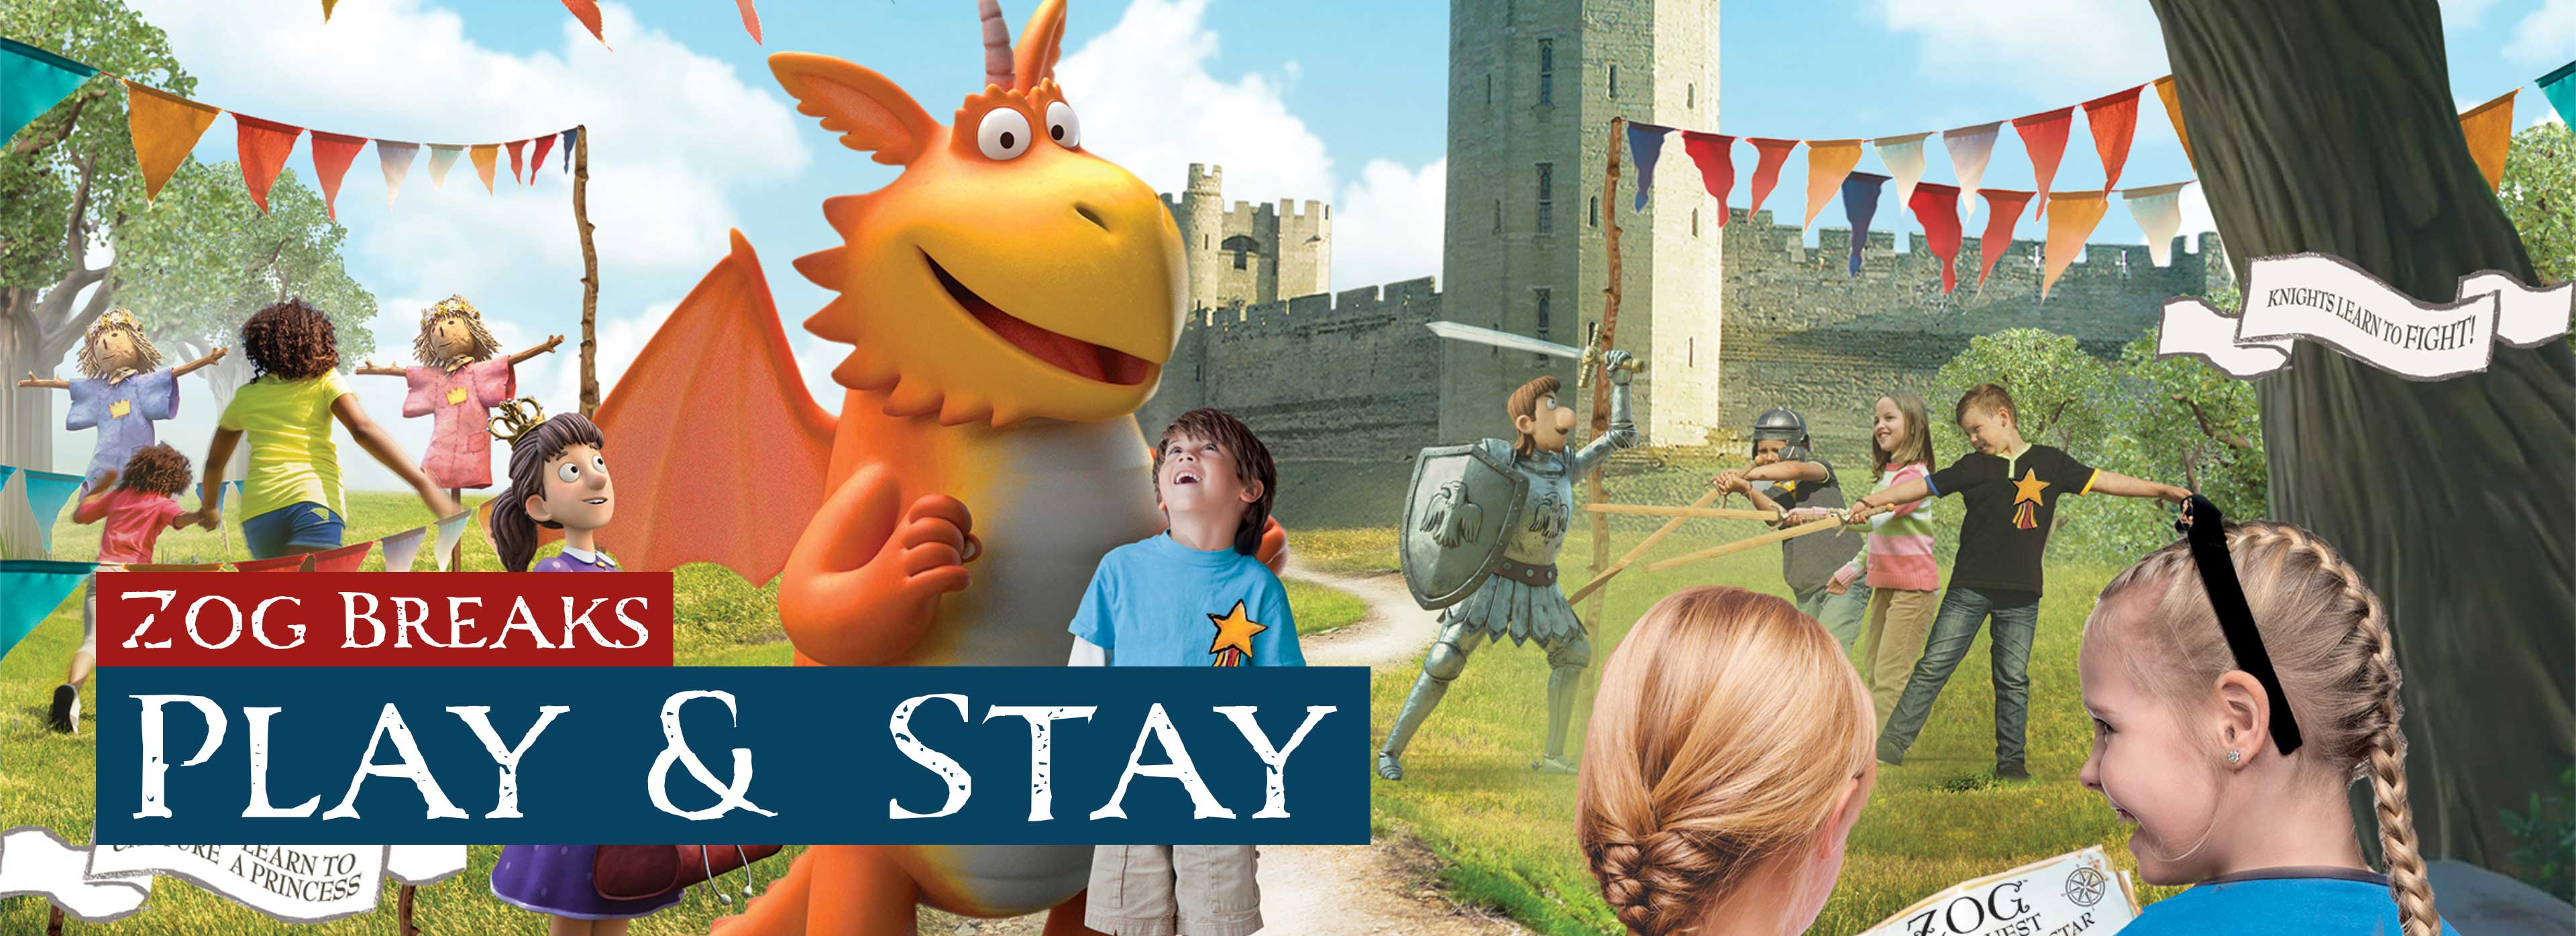 Zog Stay and Play short breaks at Warwick Castle